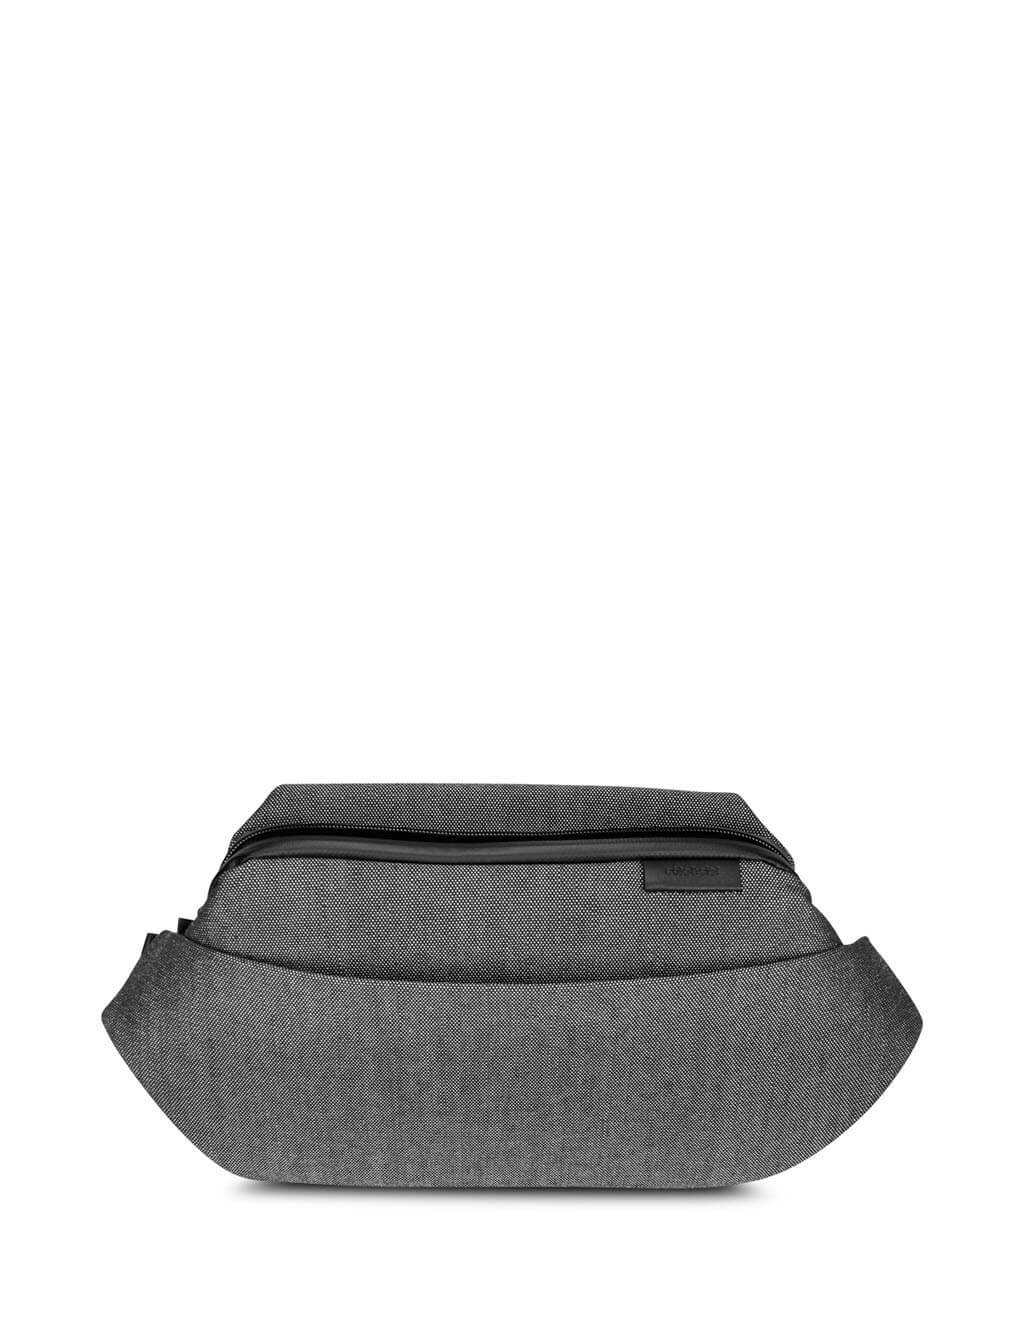 côte&ciel Men's Giulio Fashion Steel Grey Isarau Bag 28809